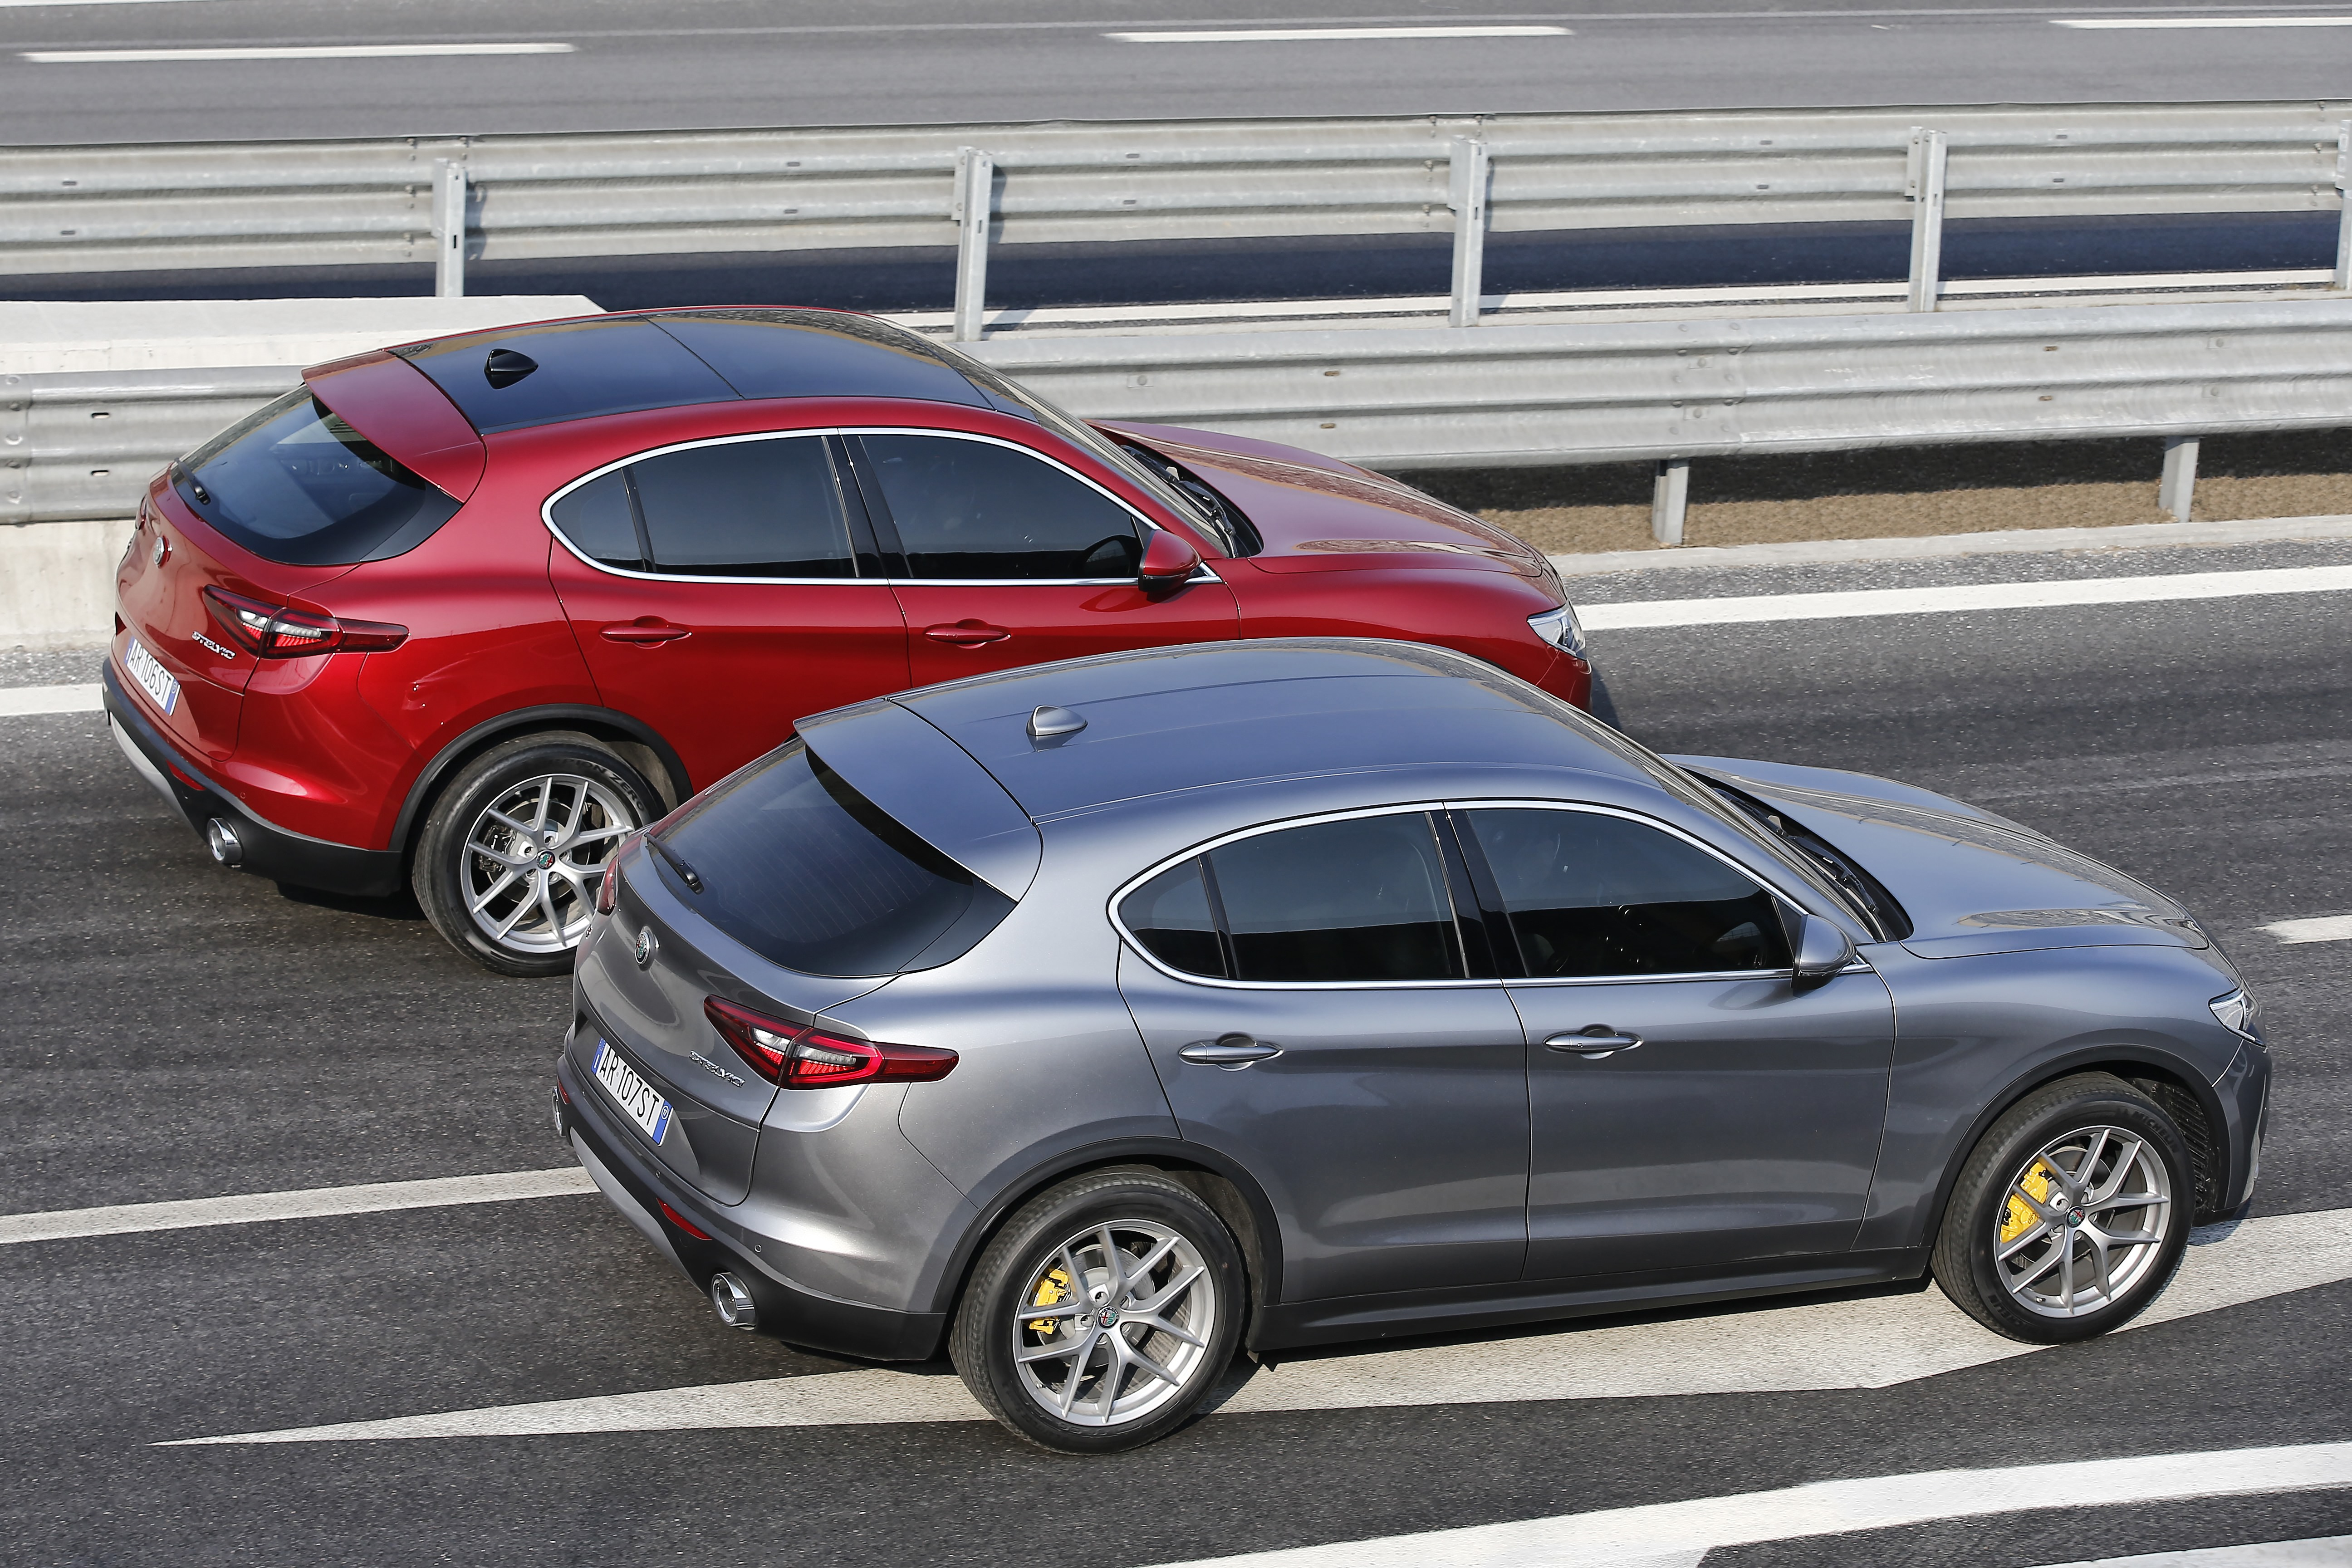 ALFA ROMEO UNVEILS STELVIO FOR FIRST TIME IN EUROPE ...